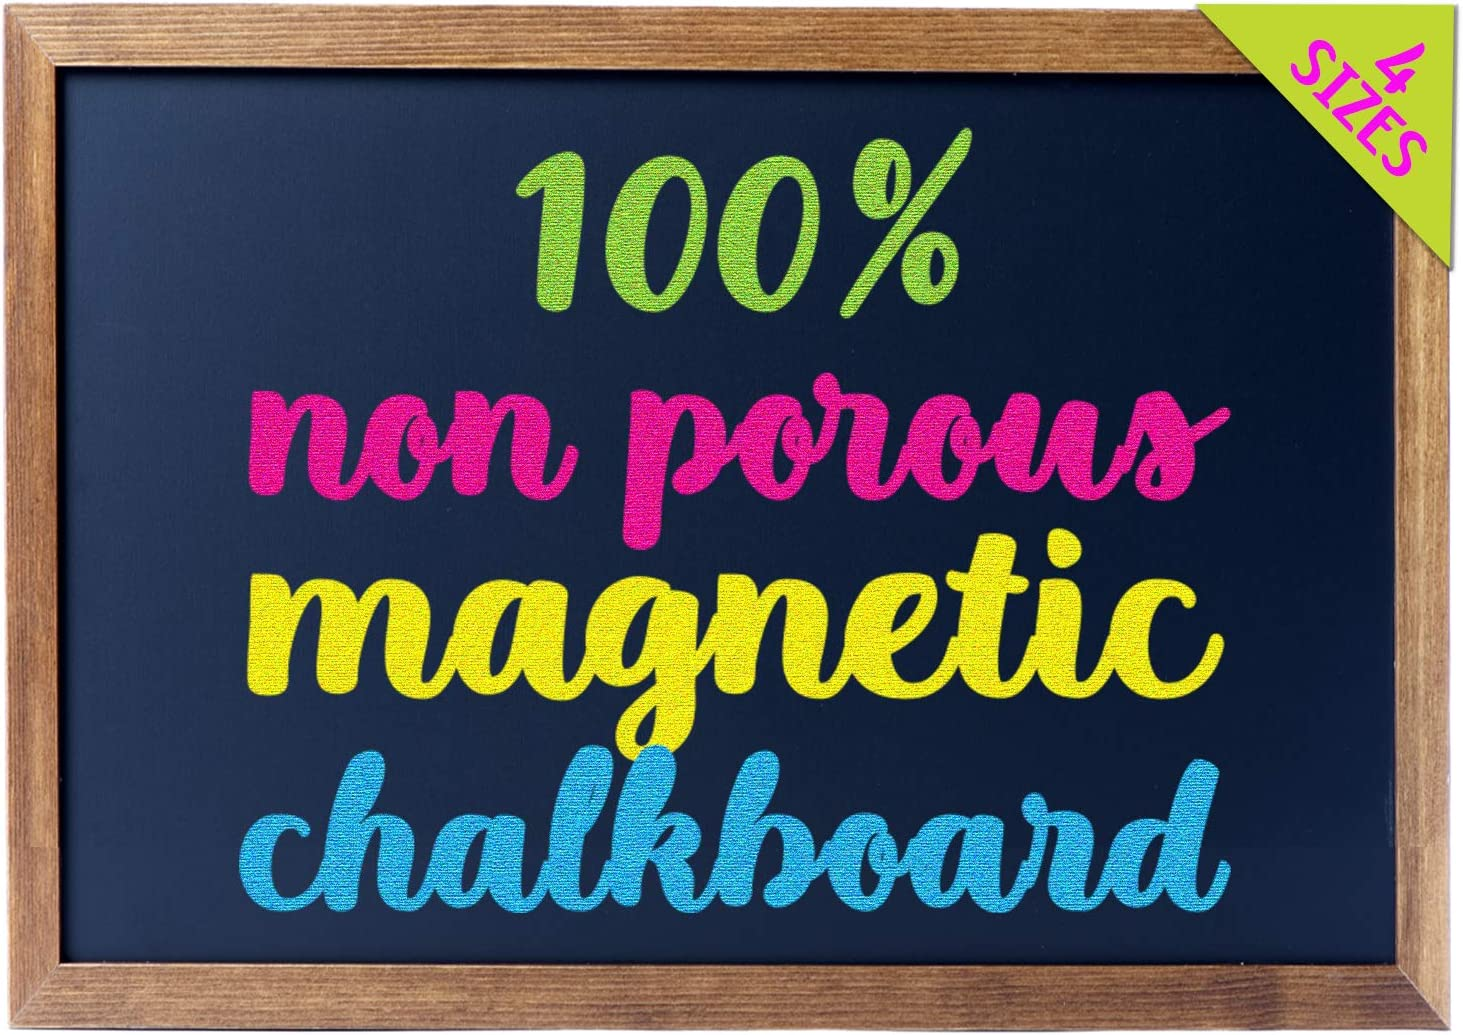 "Cedar Markers 36""x24"" Big Chalkboard with Wooden Frame. 100% Non-Porous Erasable Blackboard and Whiteboard for Liquid Chalk Markers. Magnet Board Chalk Board Decorative Chalkboard for Parties (36x24)"